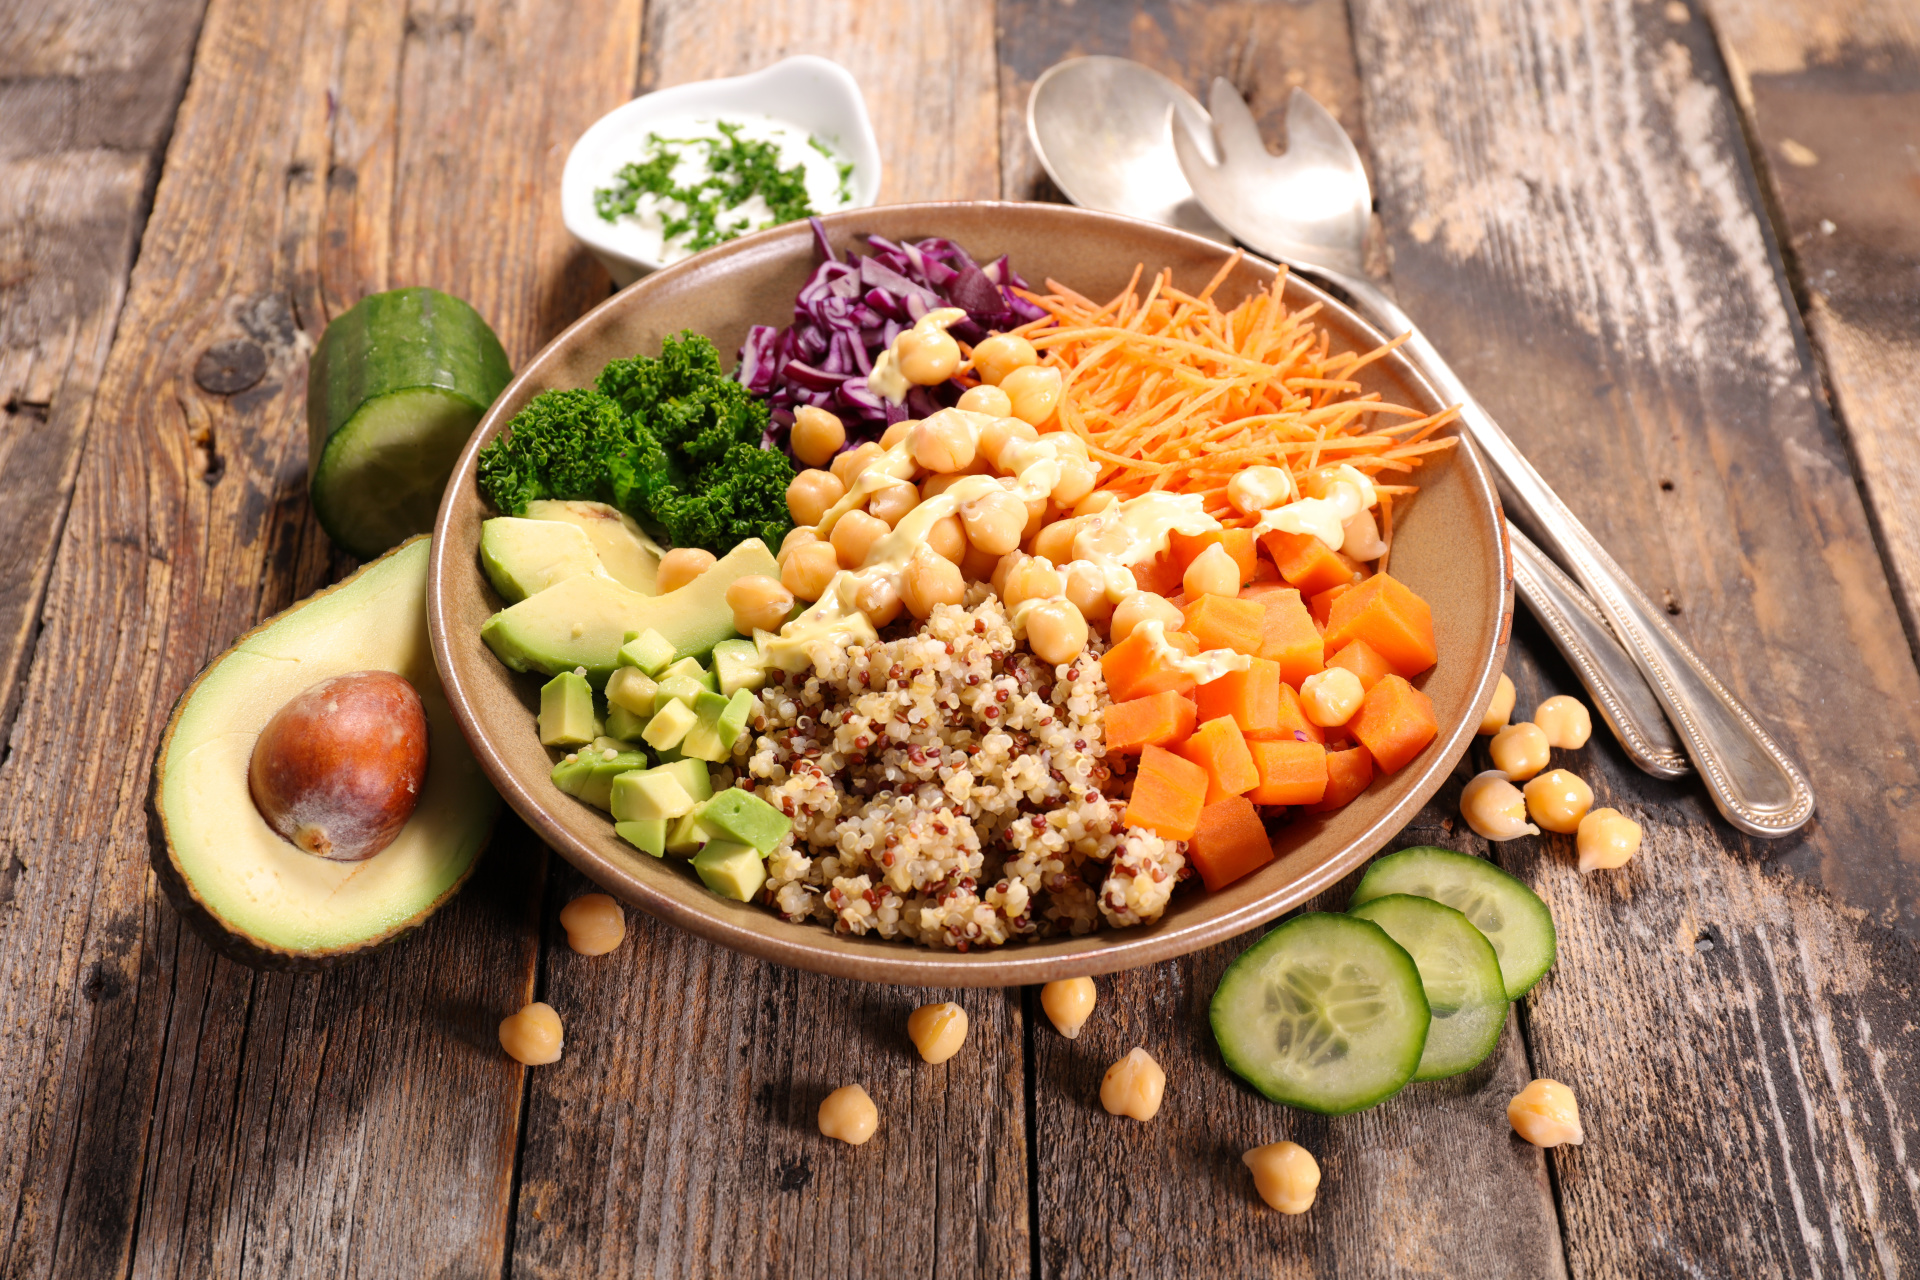 4 Ways to Optimize Protein in a Vegan Diet